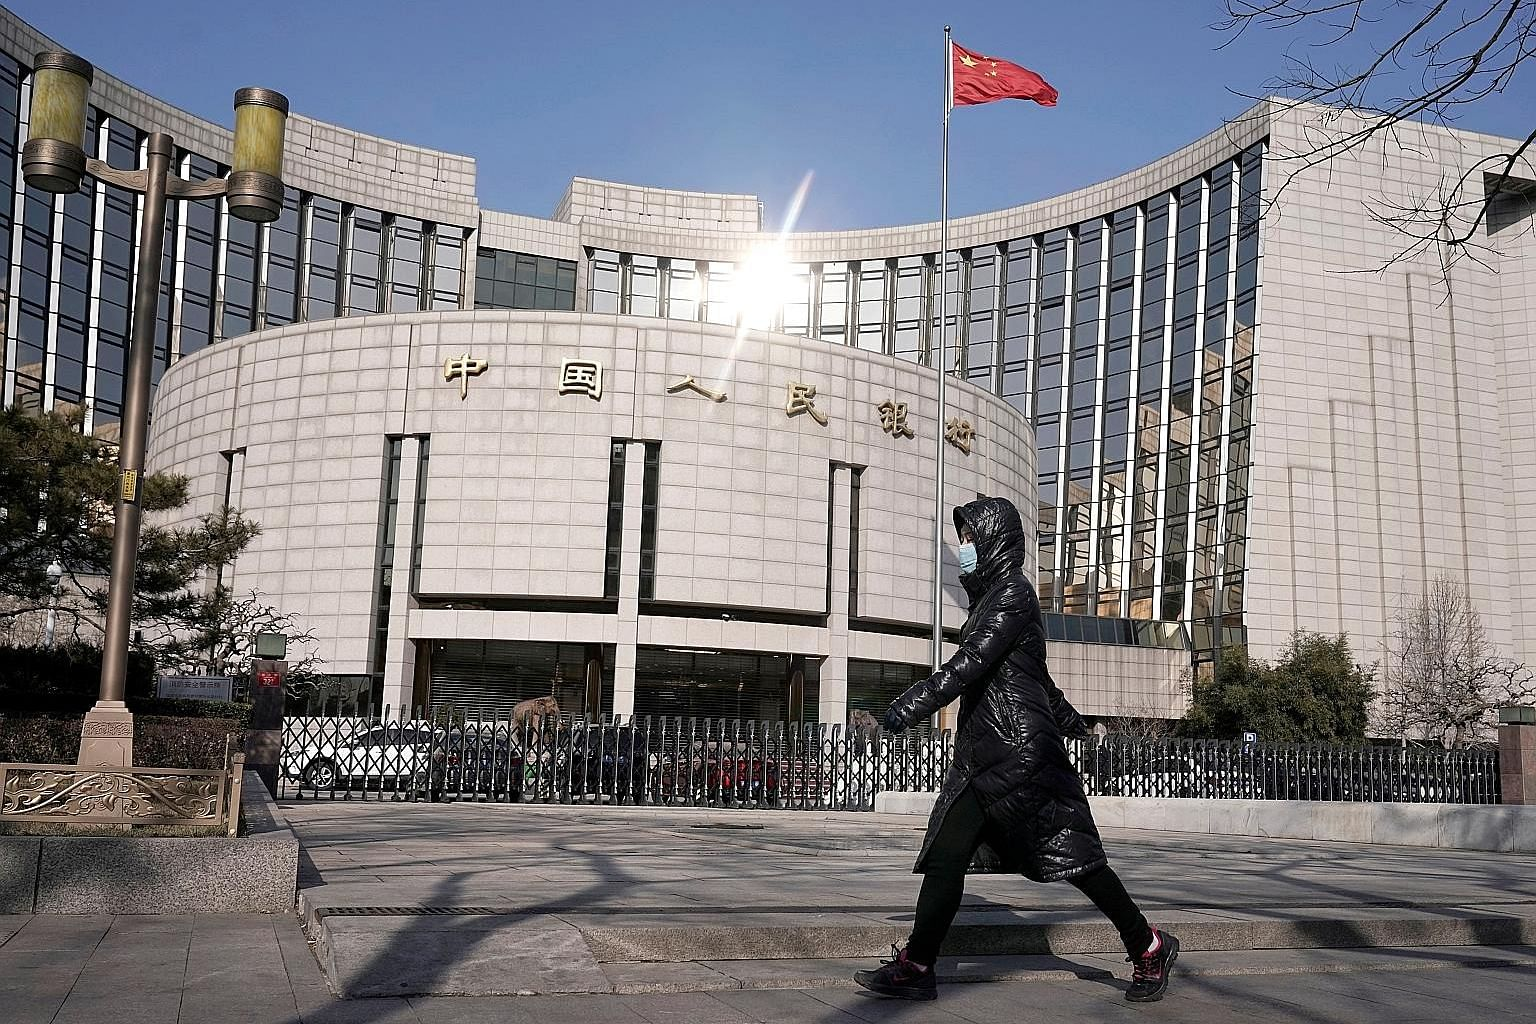 The headquarters of the People's Bank of China in Beijing. Analysts said the surprise non-action suggests the authorities in China are broadly comfortable with the current policy settings for now after the central bank last week cut the amount of res